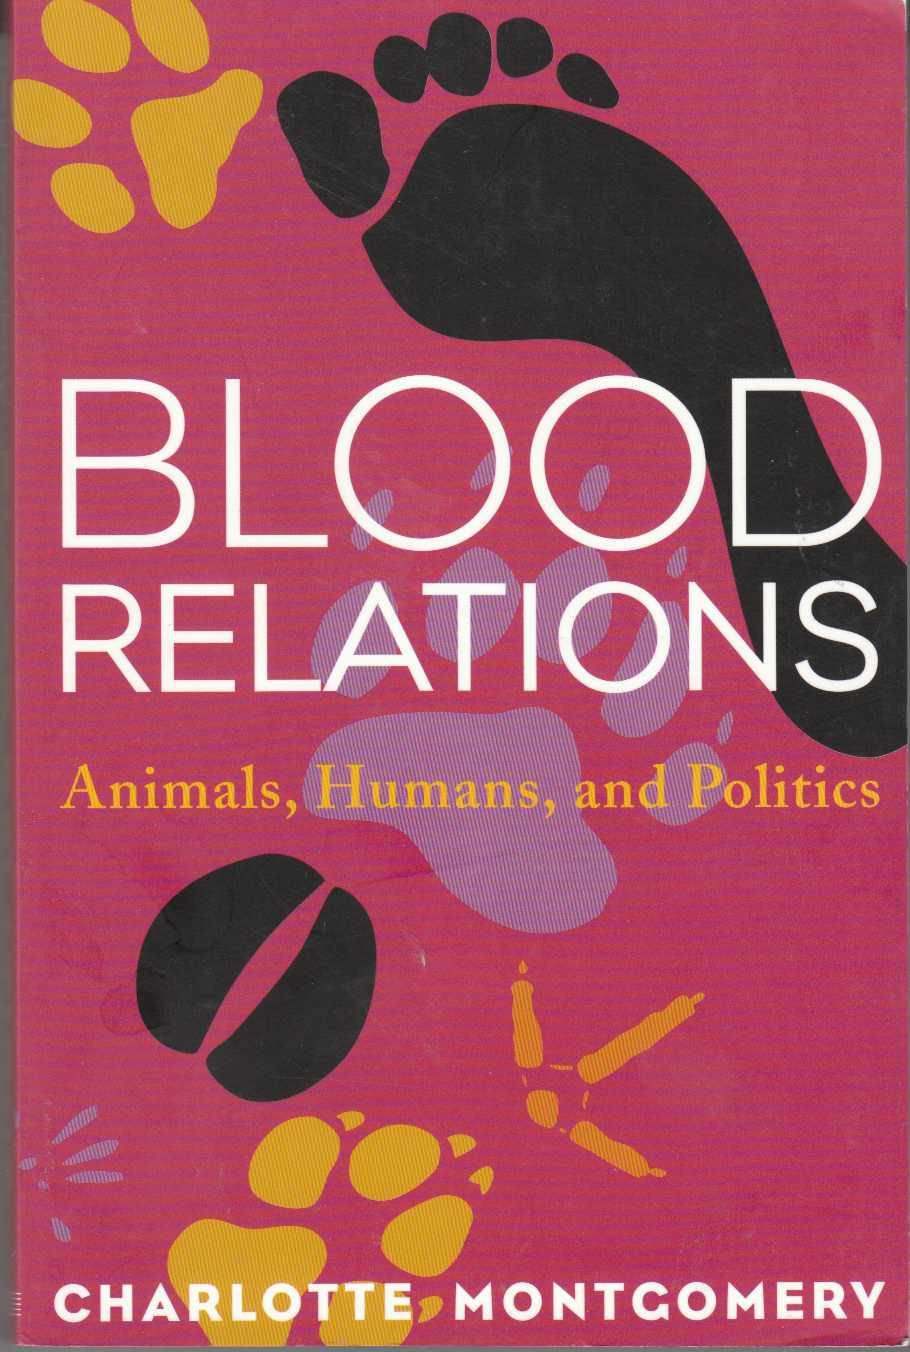 Image for Blood Relations Animals, Humans, and Politics